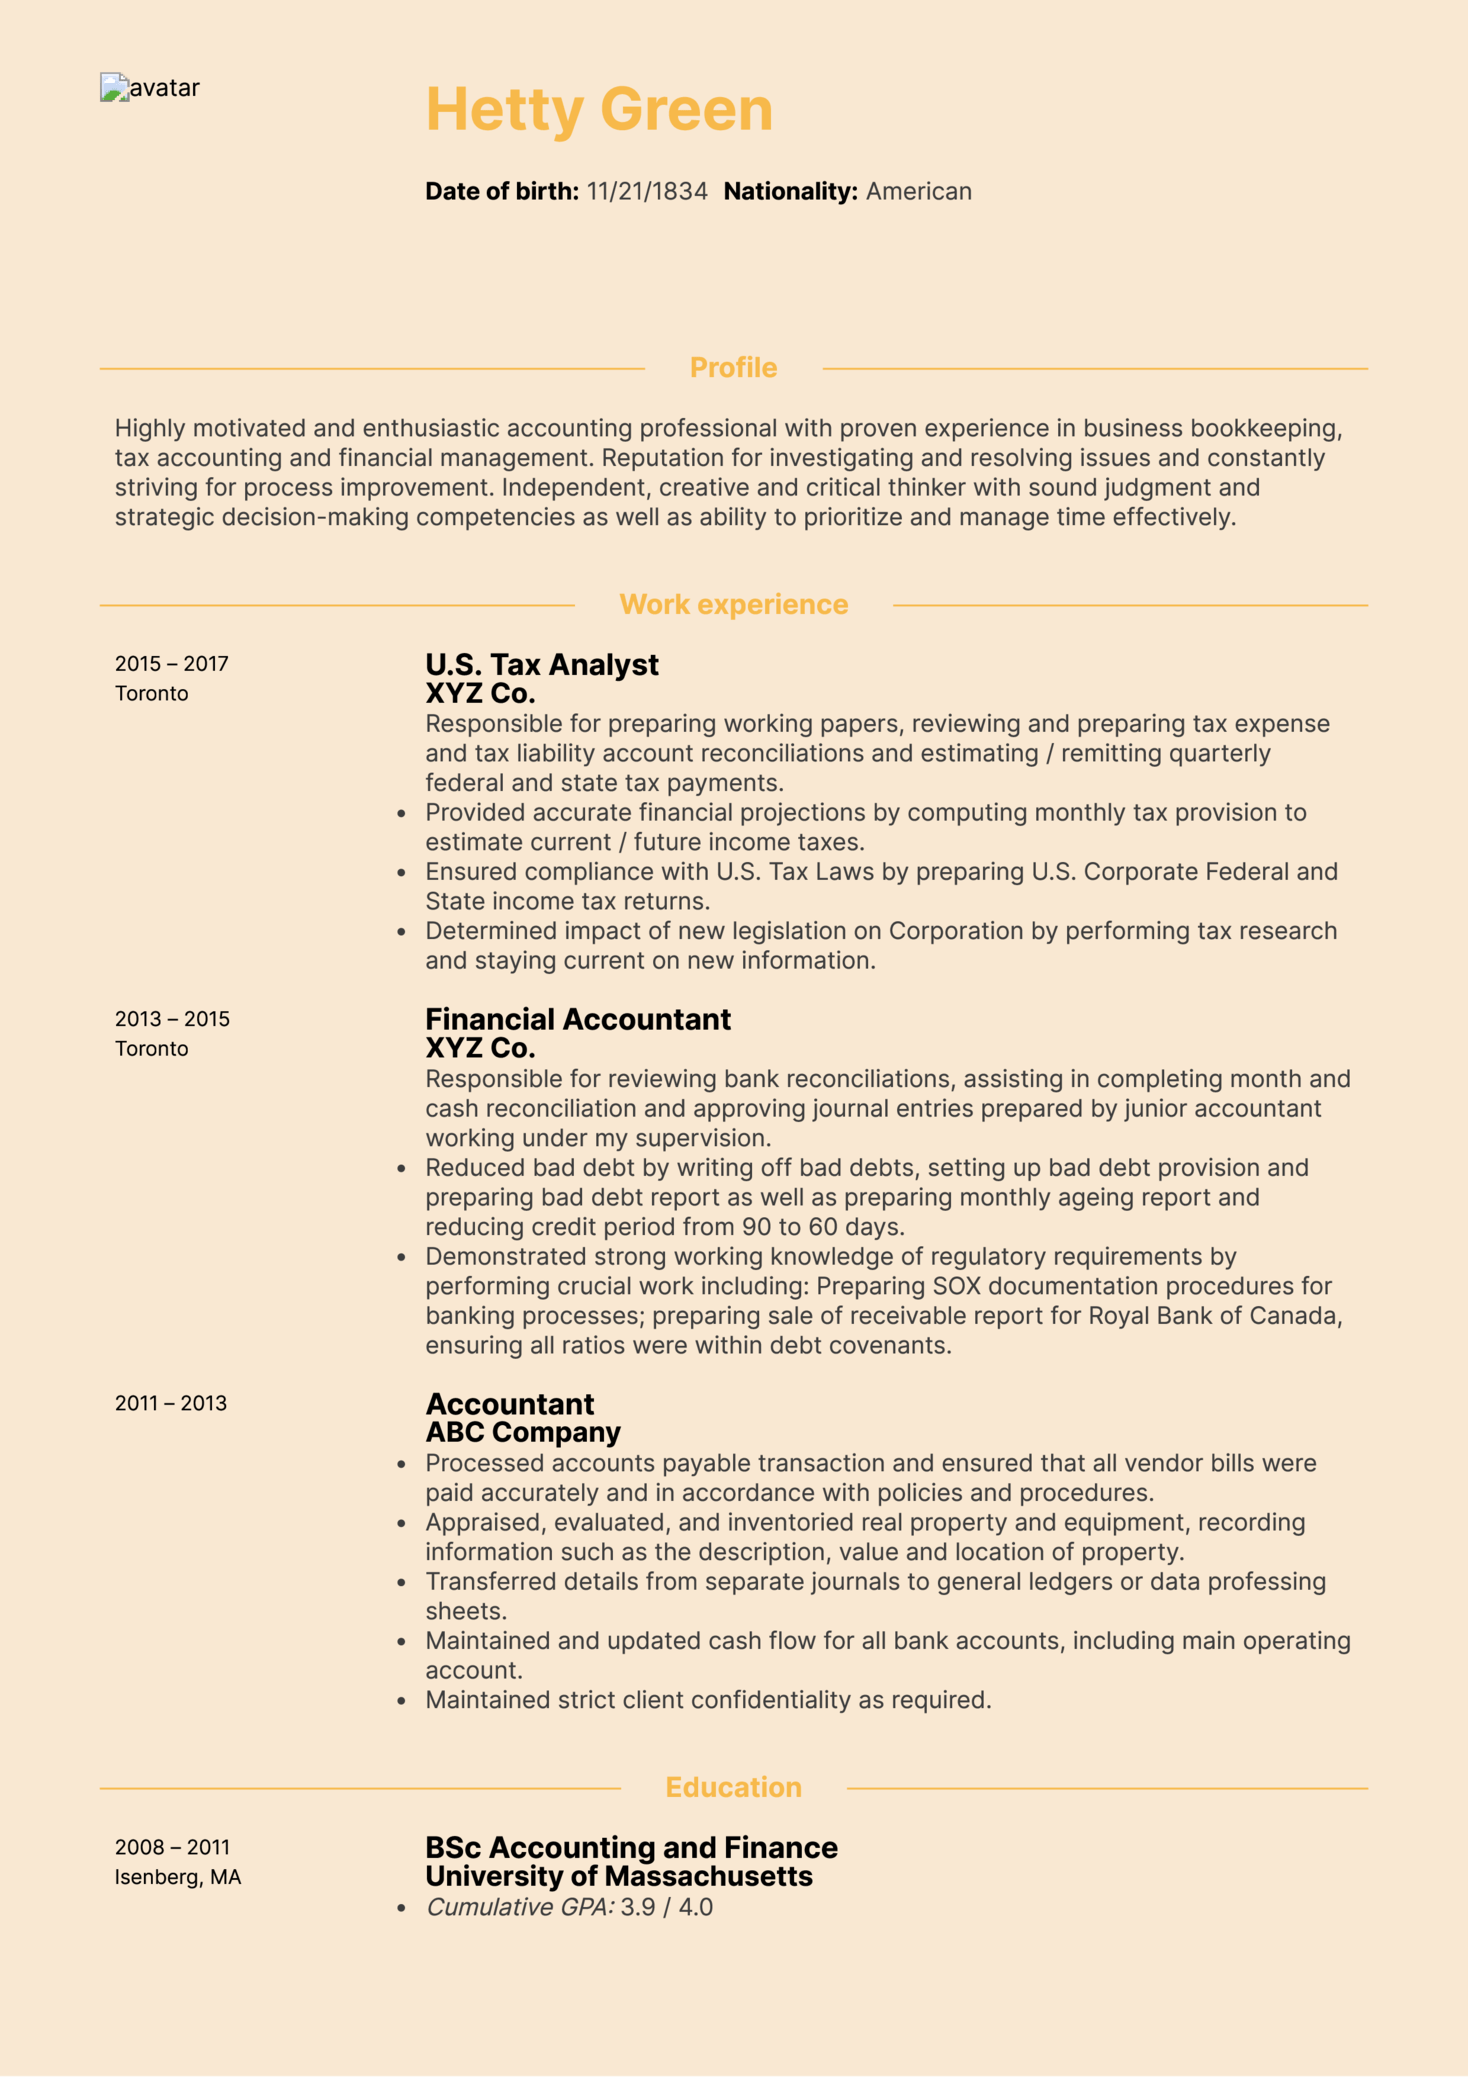 great resume example for applying financial controller job